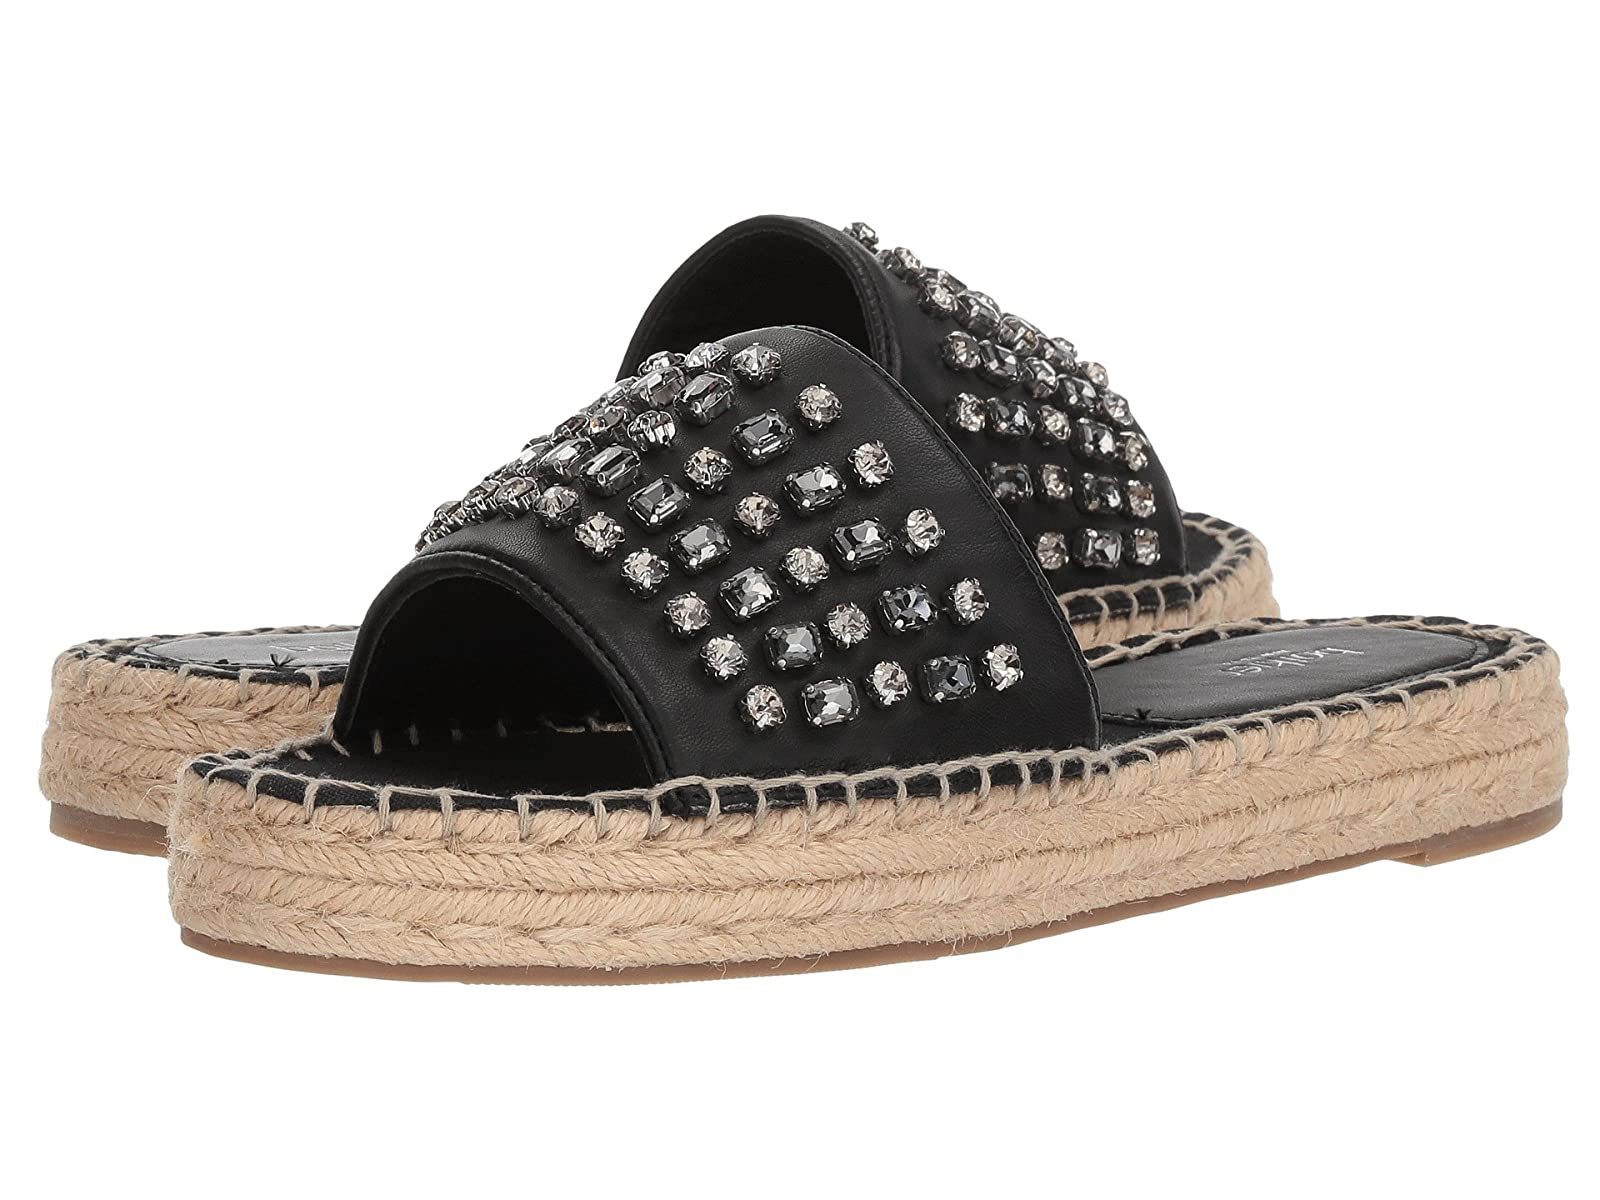 Botkier JulieComfortable and distinctive shoes